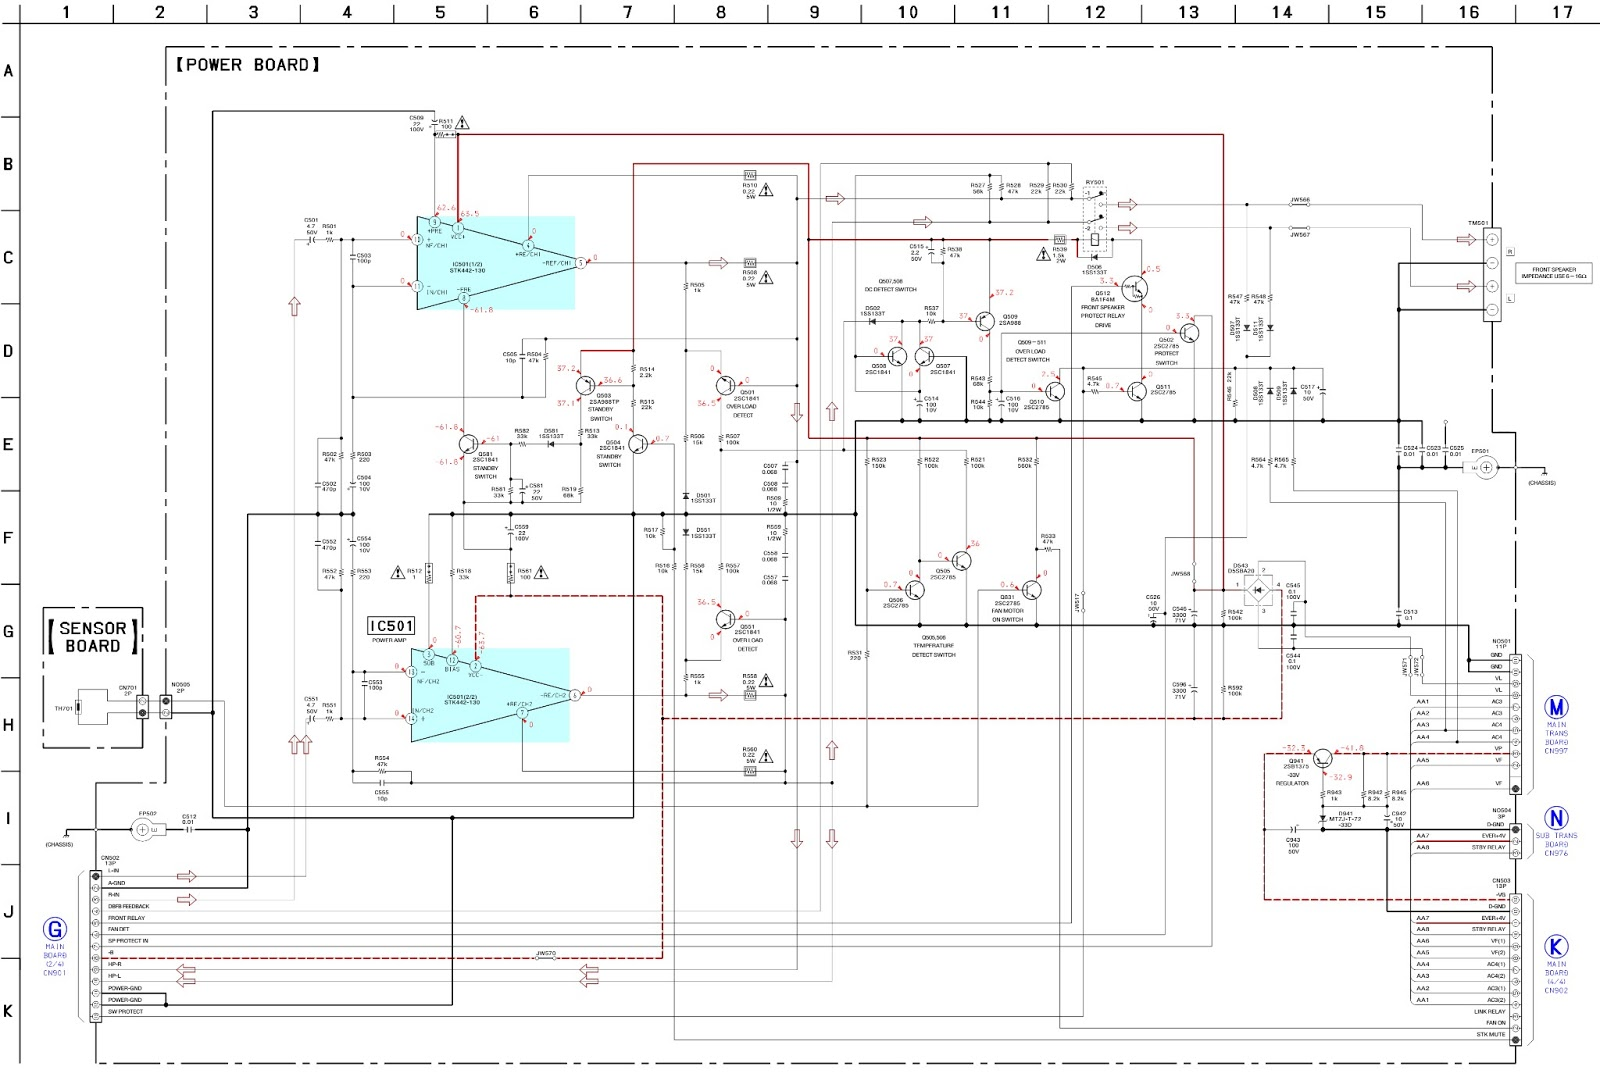 sony hcd-rg66t - stk 442-130 - power amp  u0026 power supply - schematics  circuit diagram